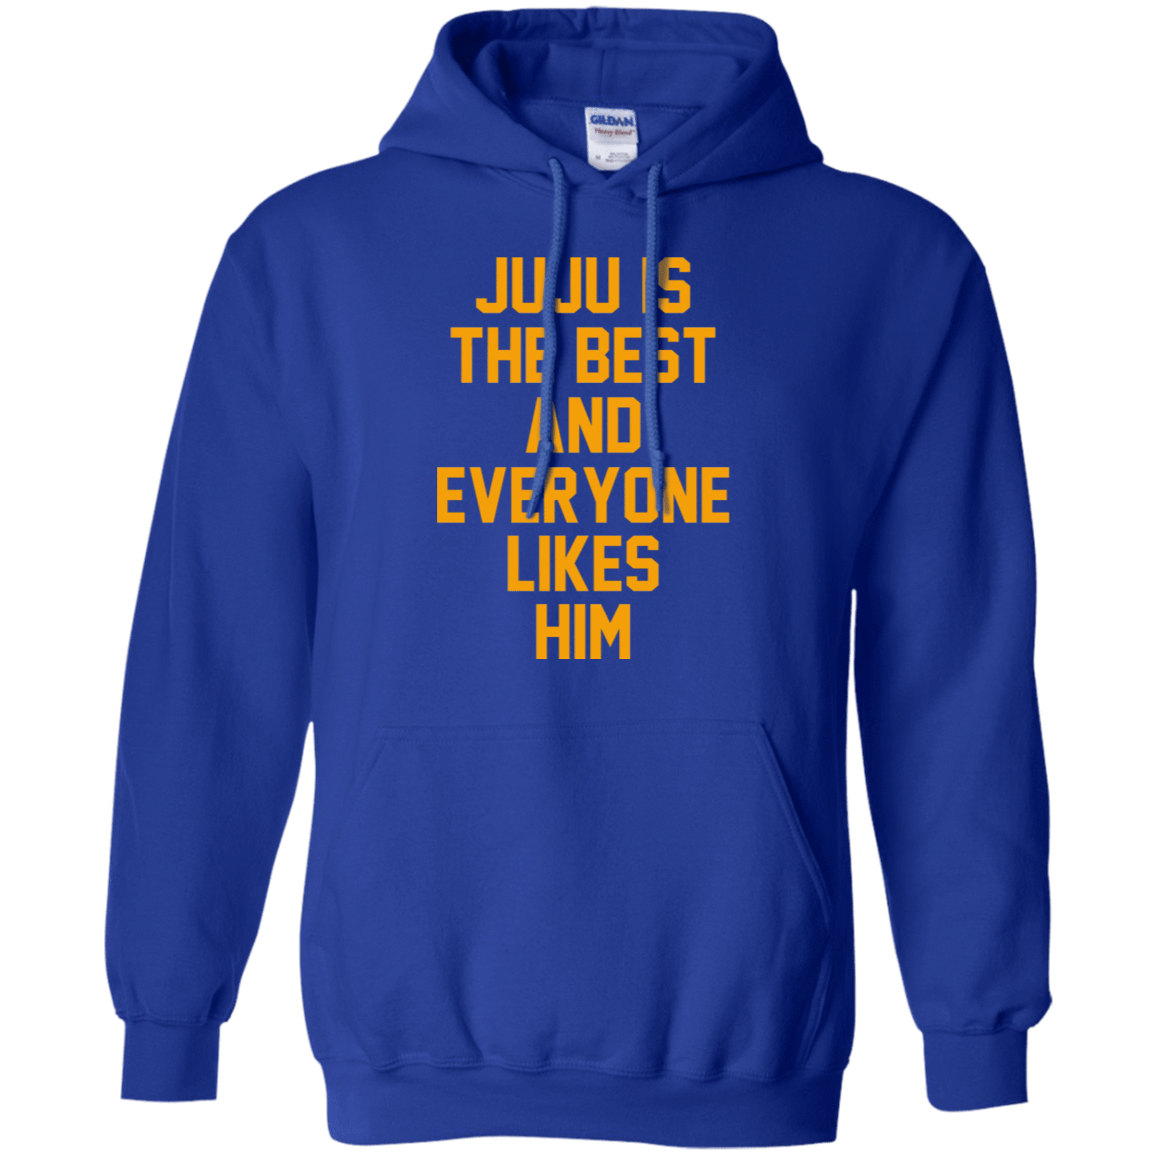 Ju Ju Is The Best And Everyone Likes Him 541-4765-72993935-23175 - Tee Ript